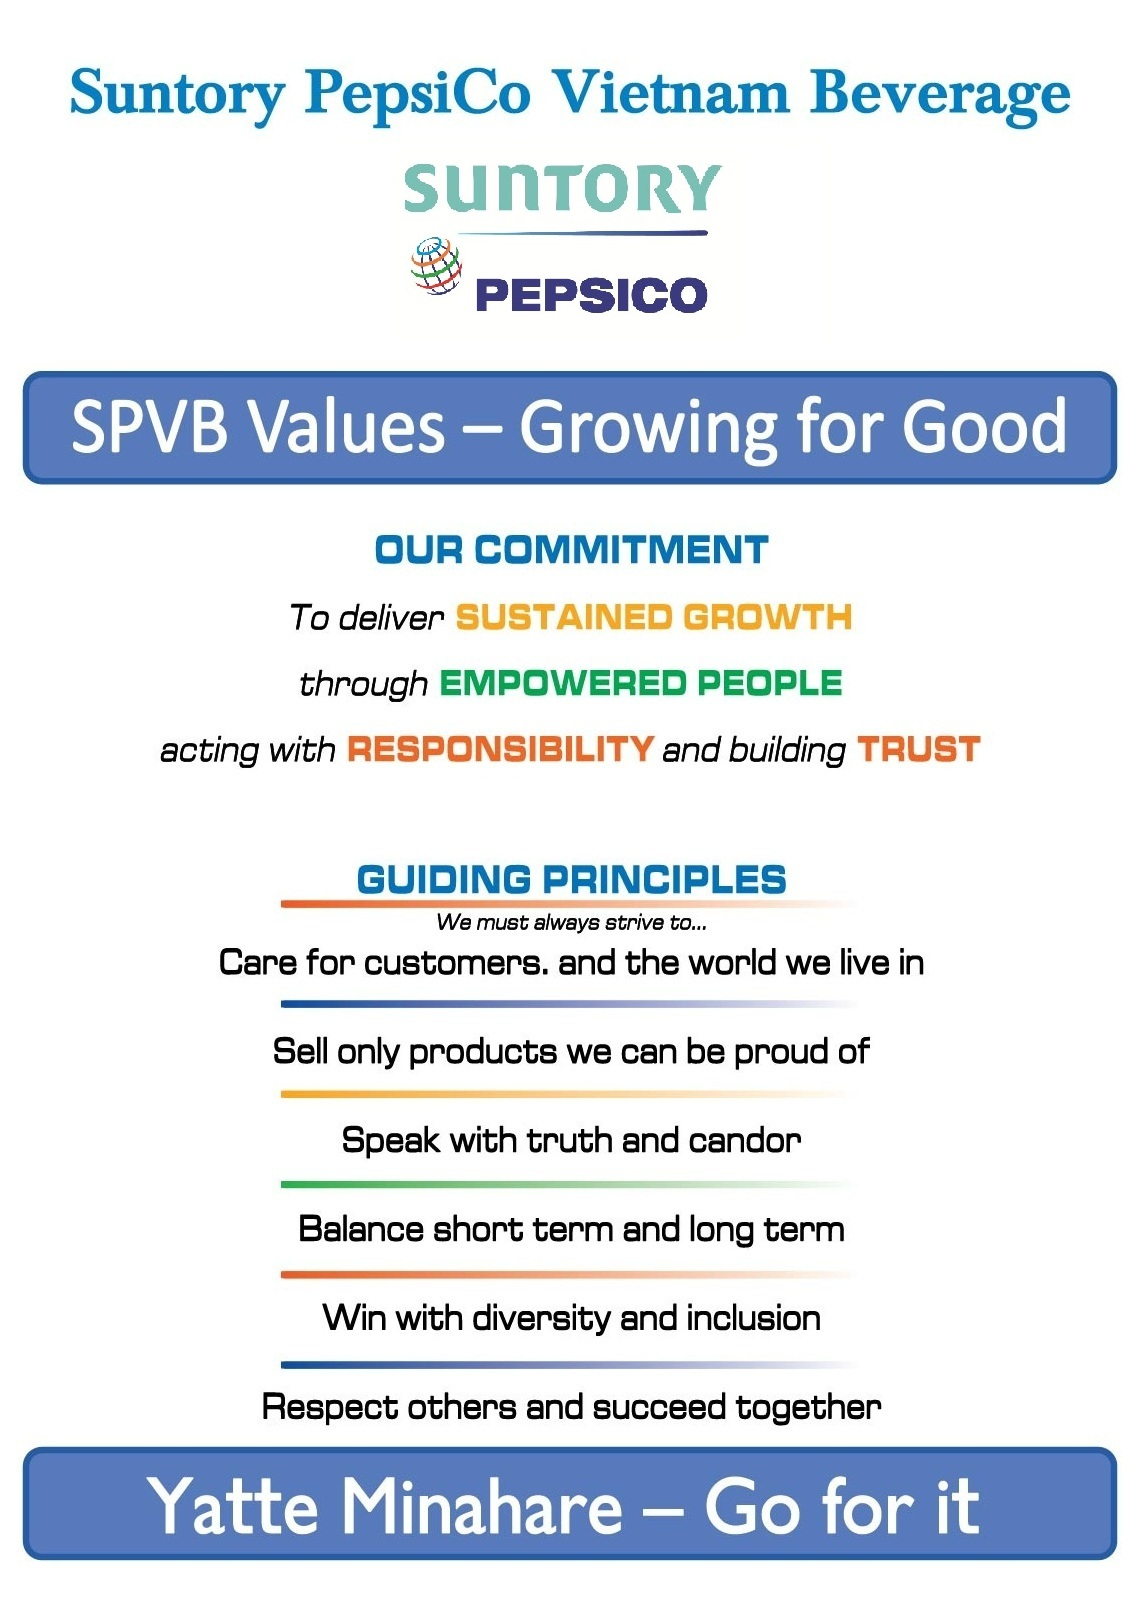 Pepsico Mission and Vision Statement Analysis